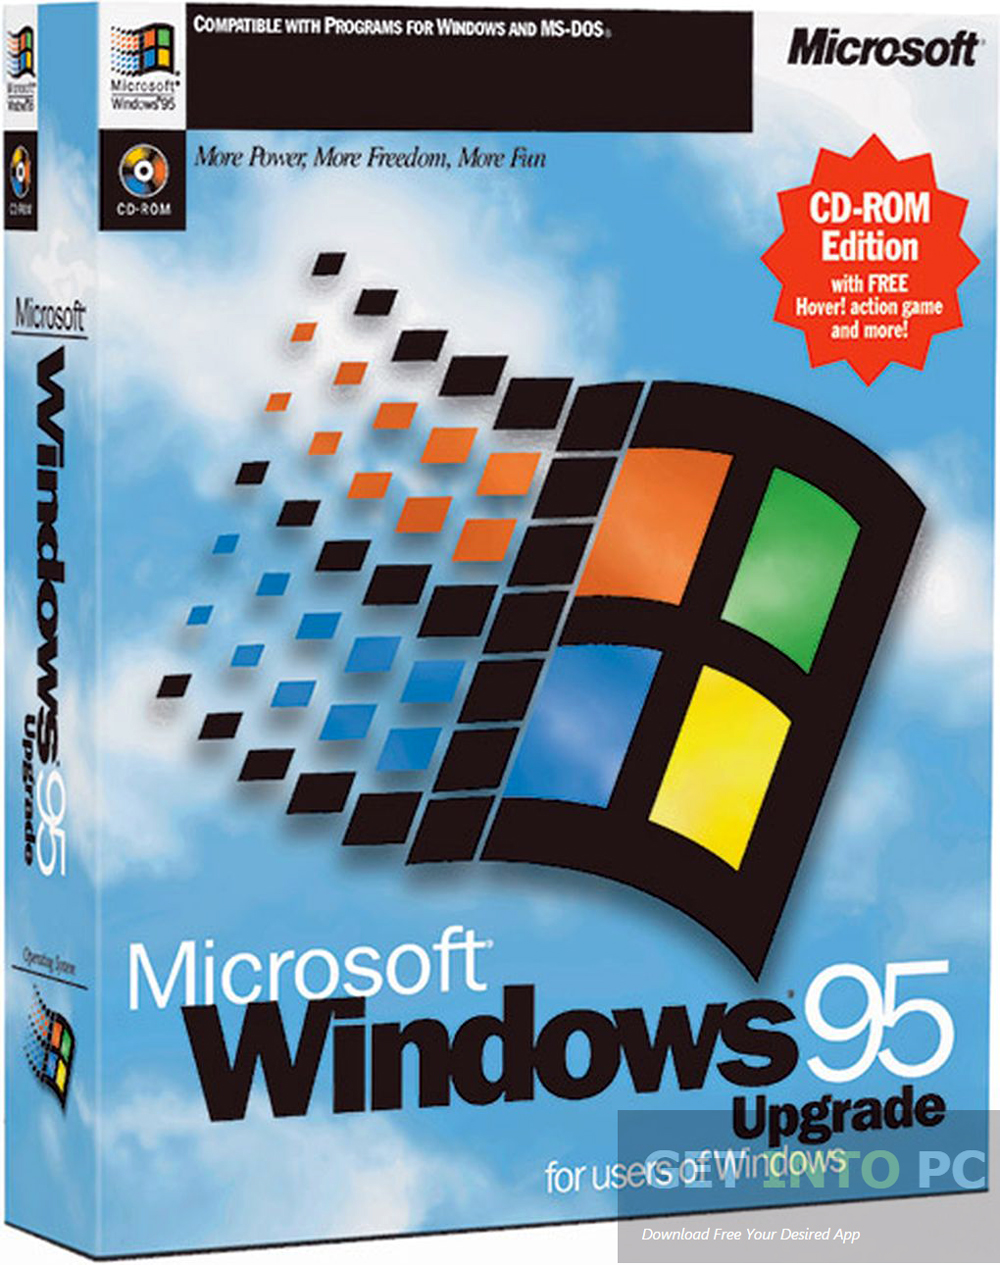 Windows 95 iso free download for Window 98 iso